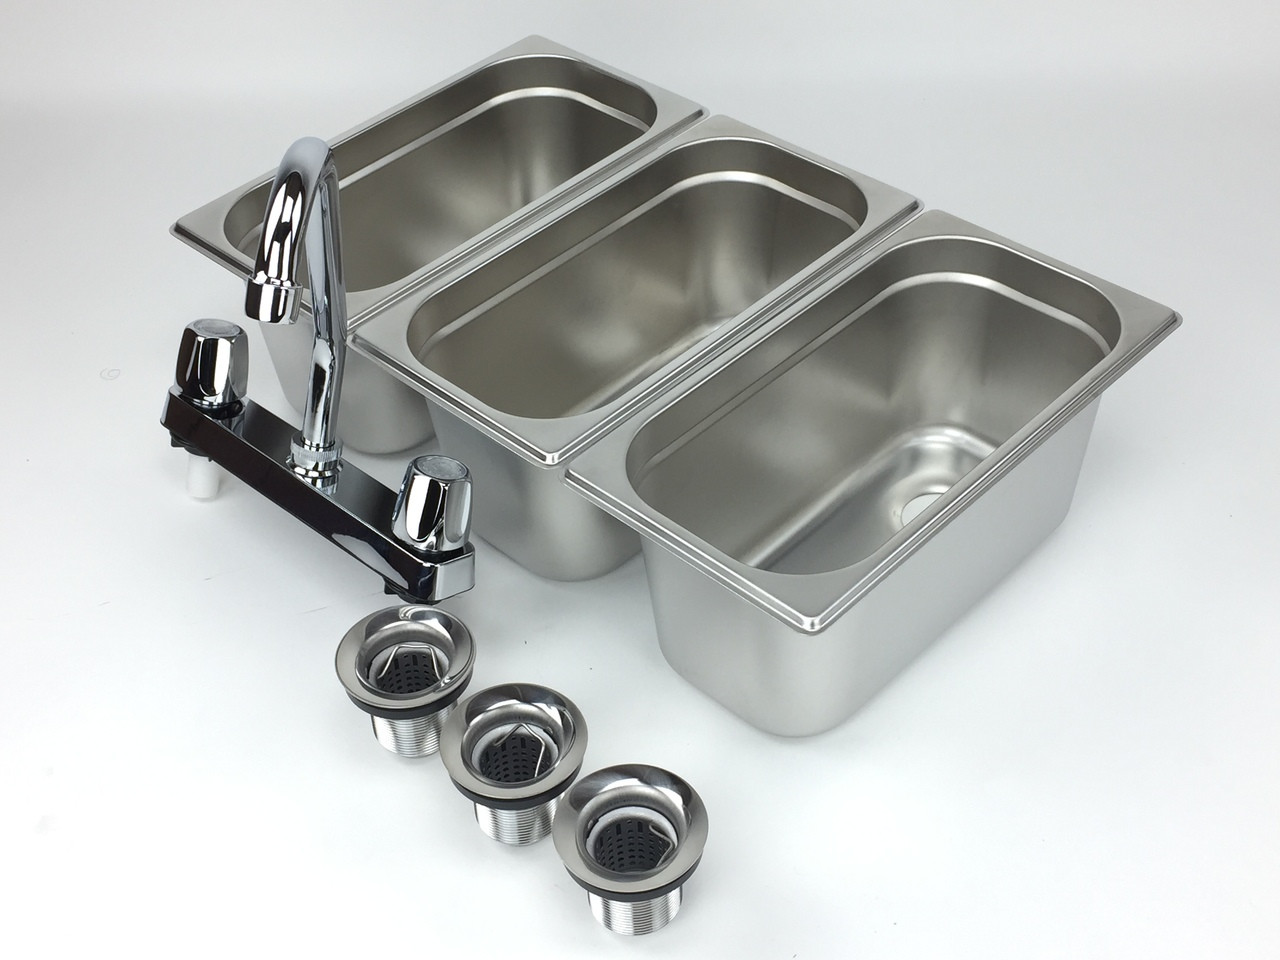 4 basin sink with faucets right angled view